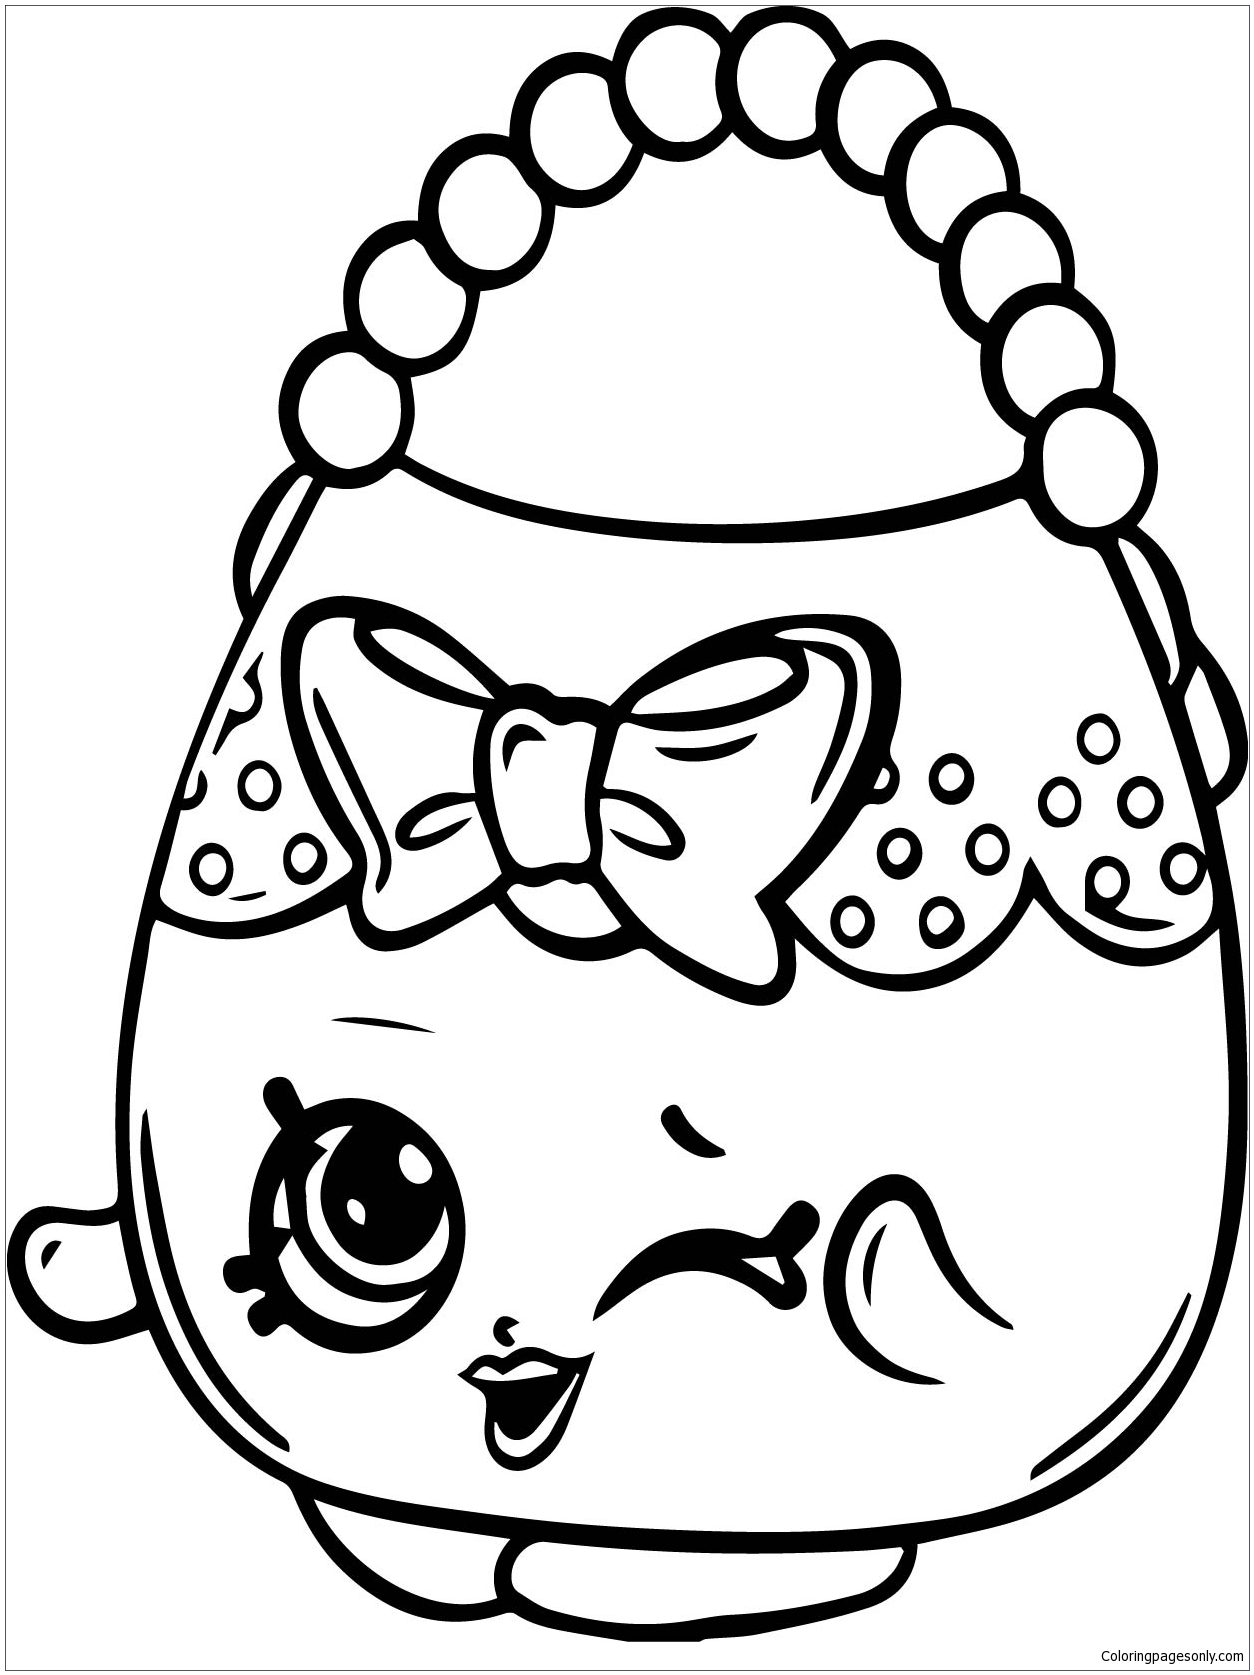 Handbag Harriet Shopkins Season 4 Coloring Page